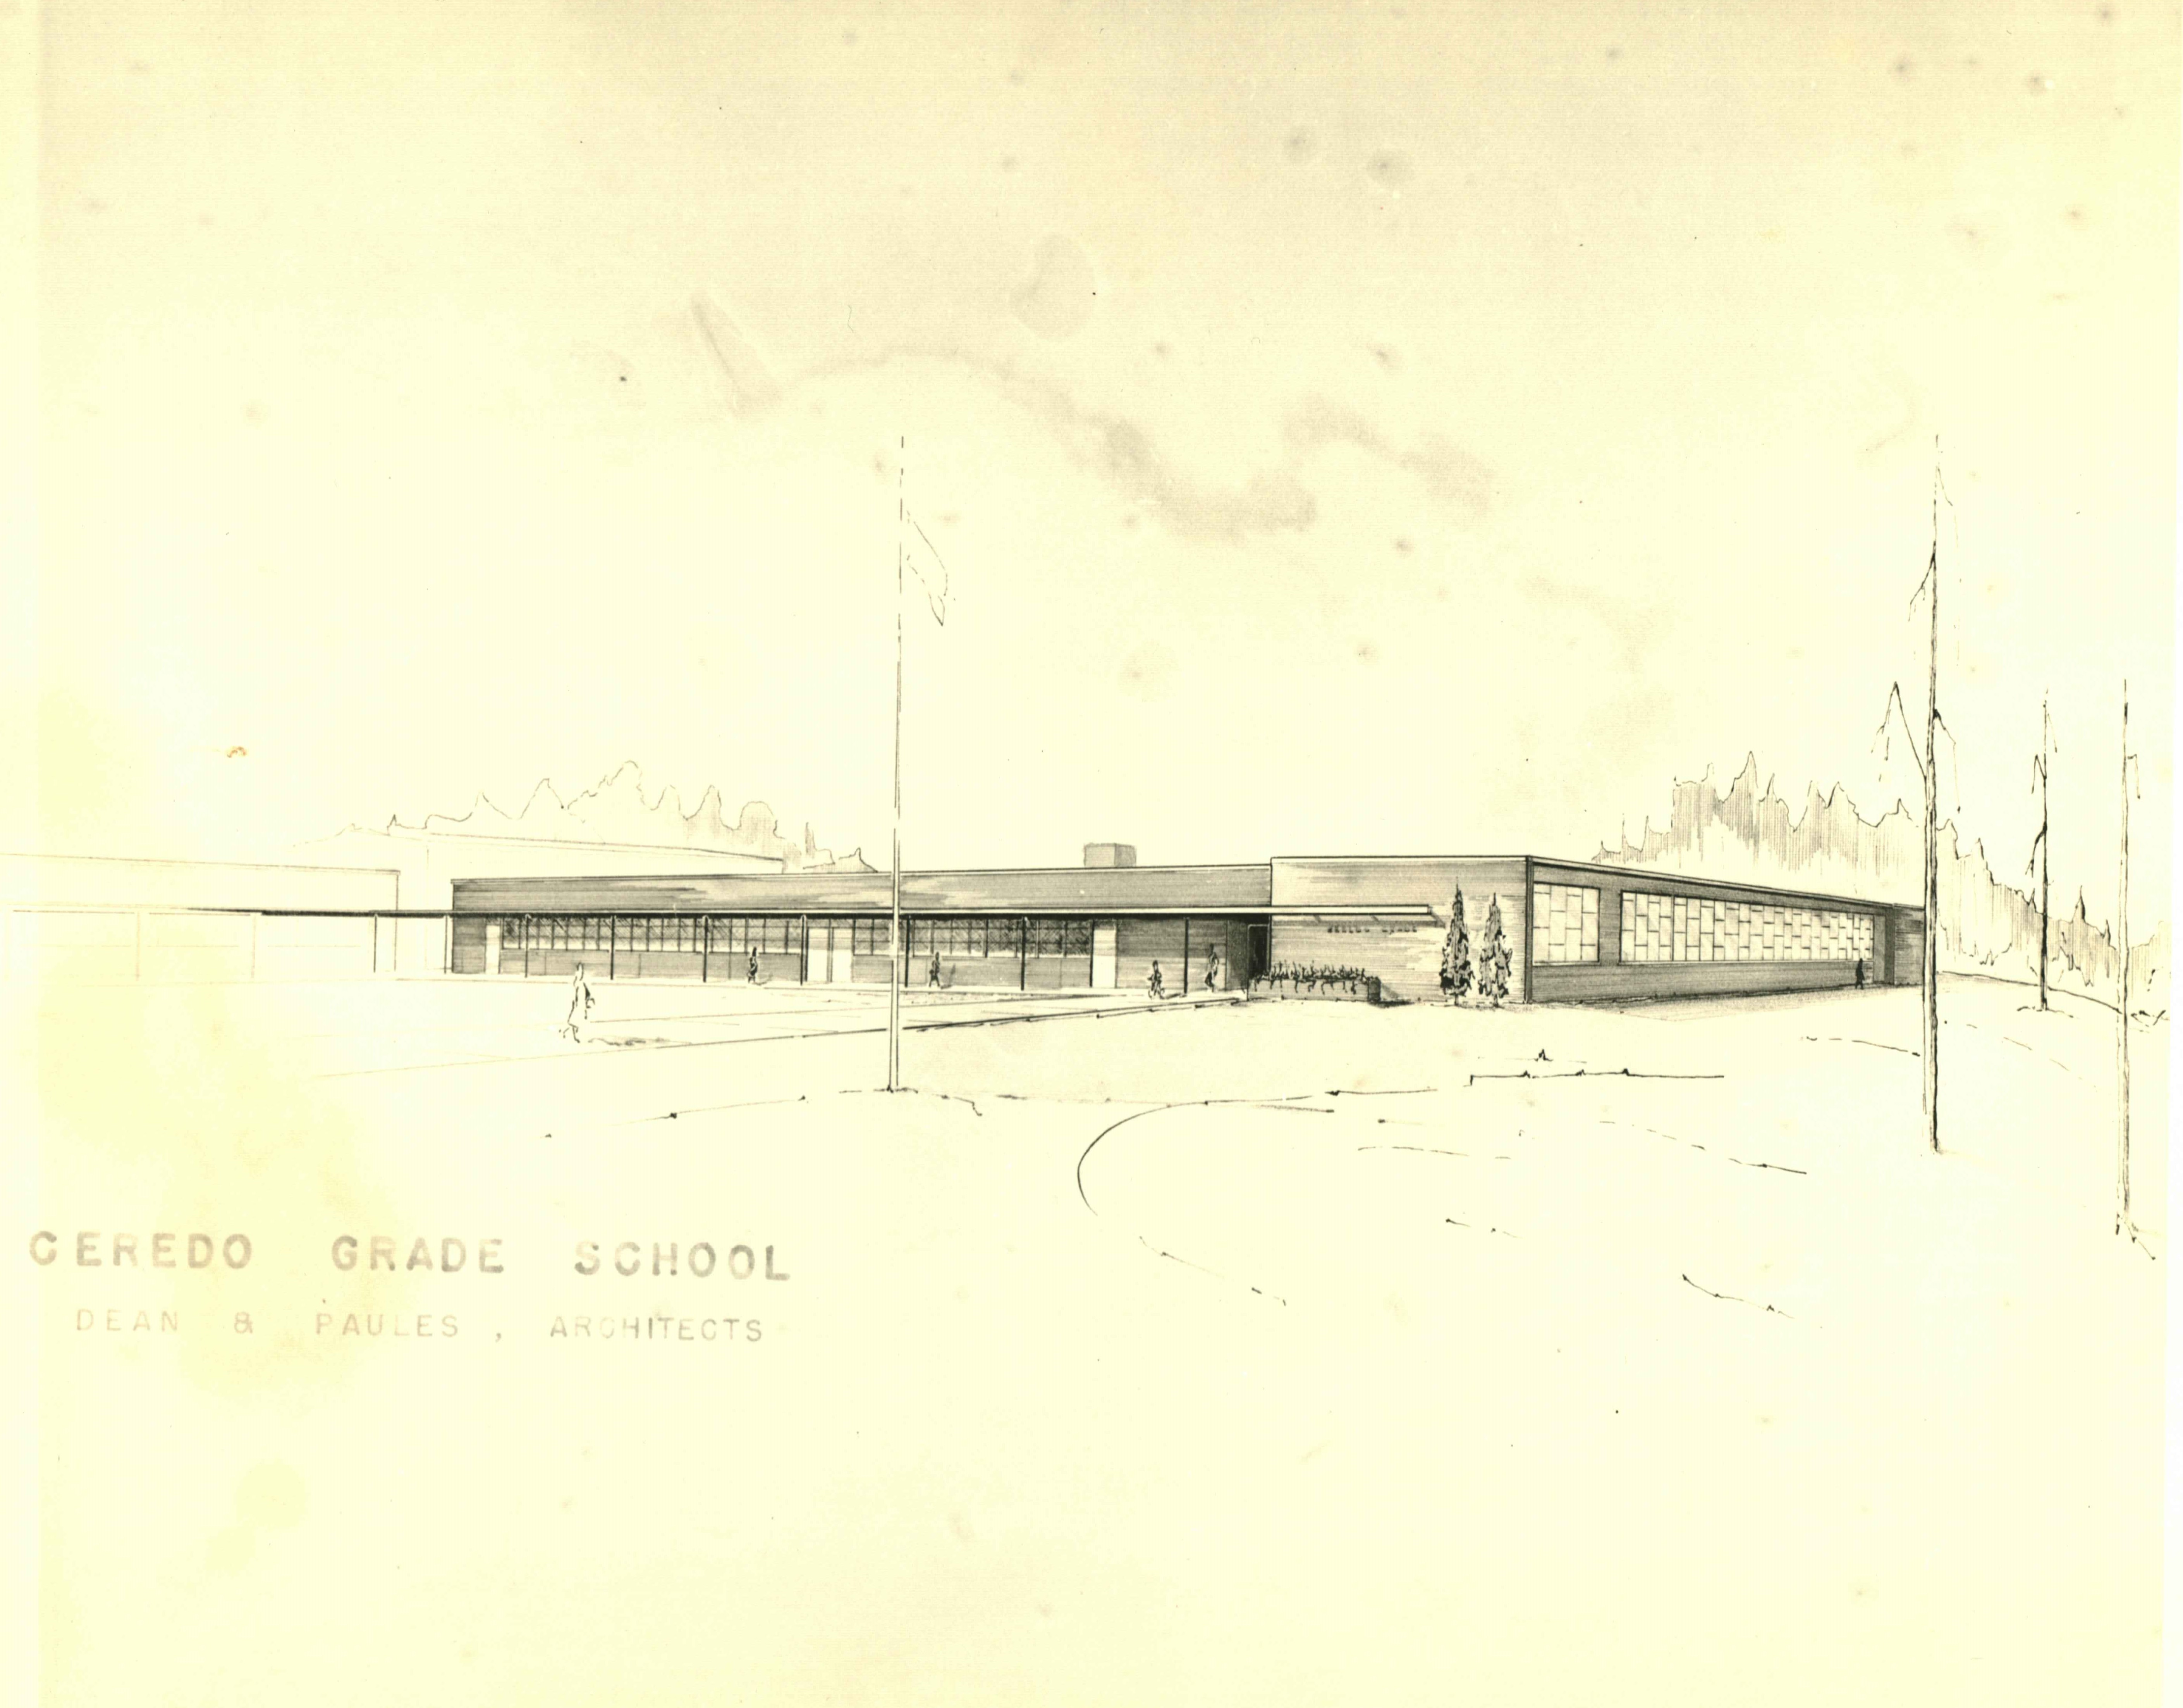 Concept art for the new Ceredo Elementary School building following the 1957 fire. Image courtesy of the Ceredo Historical Society Museum.